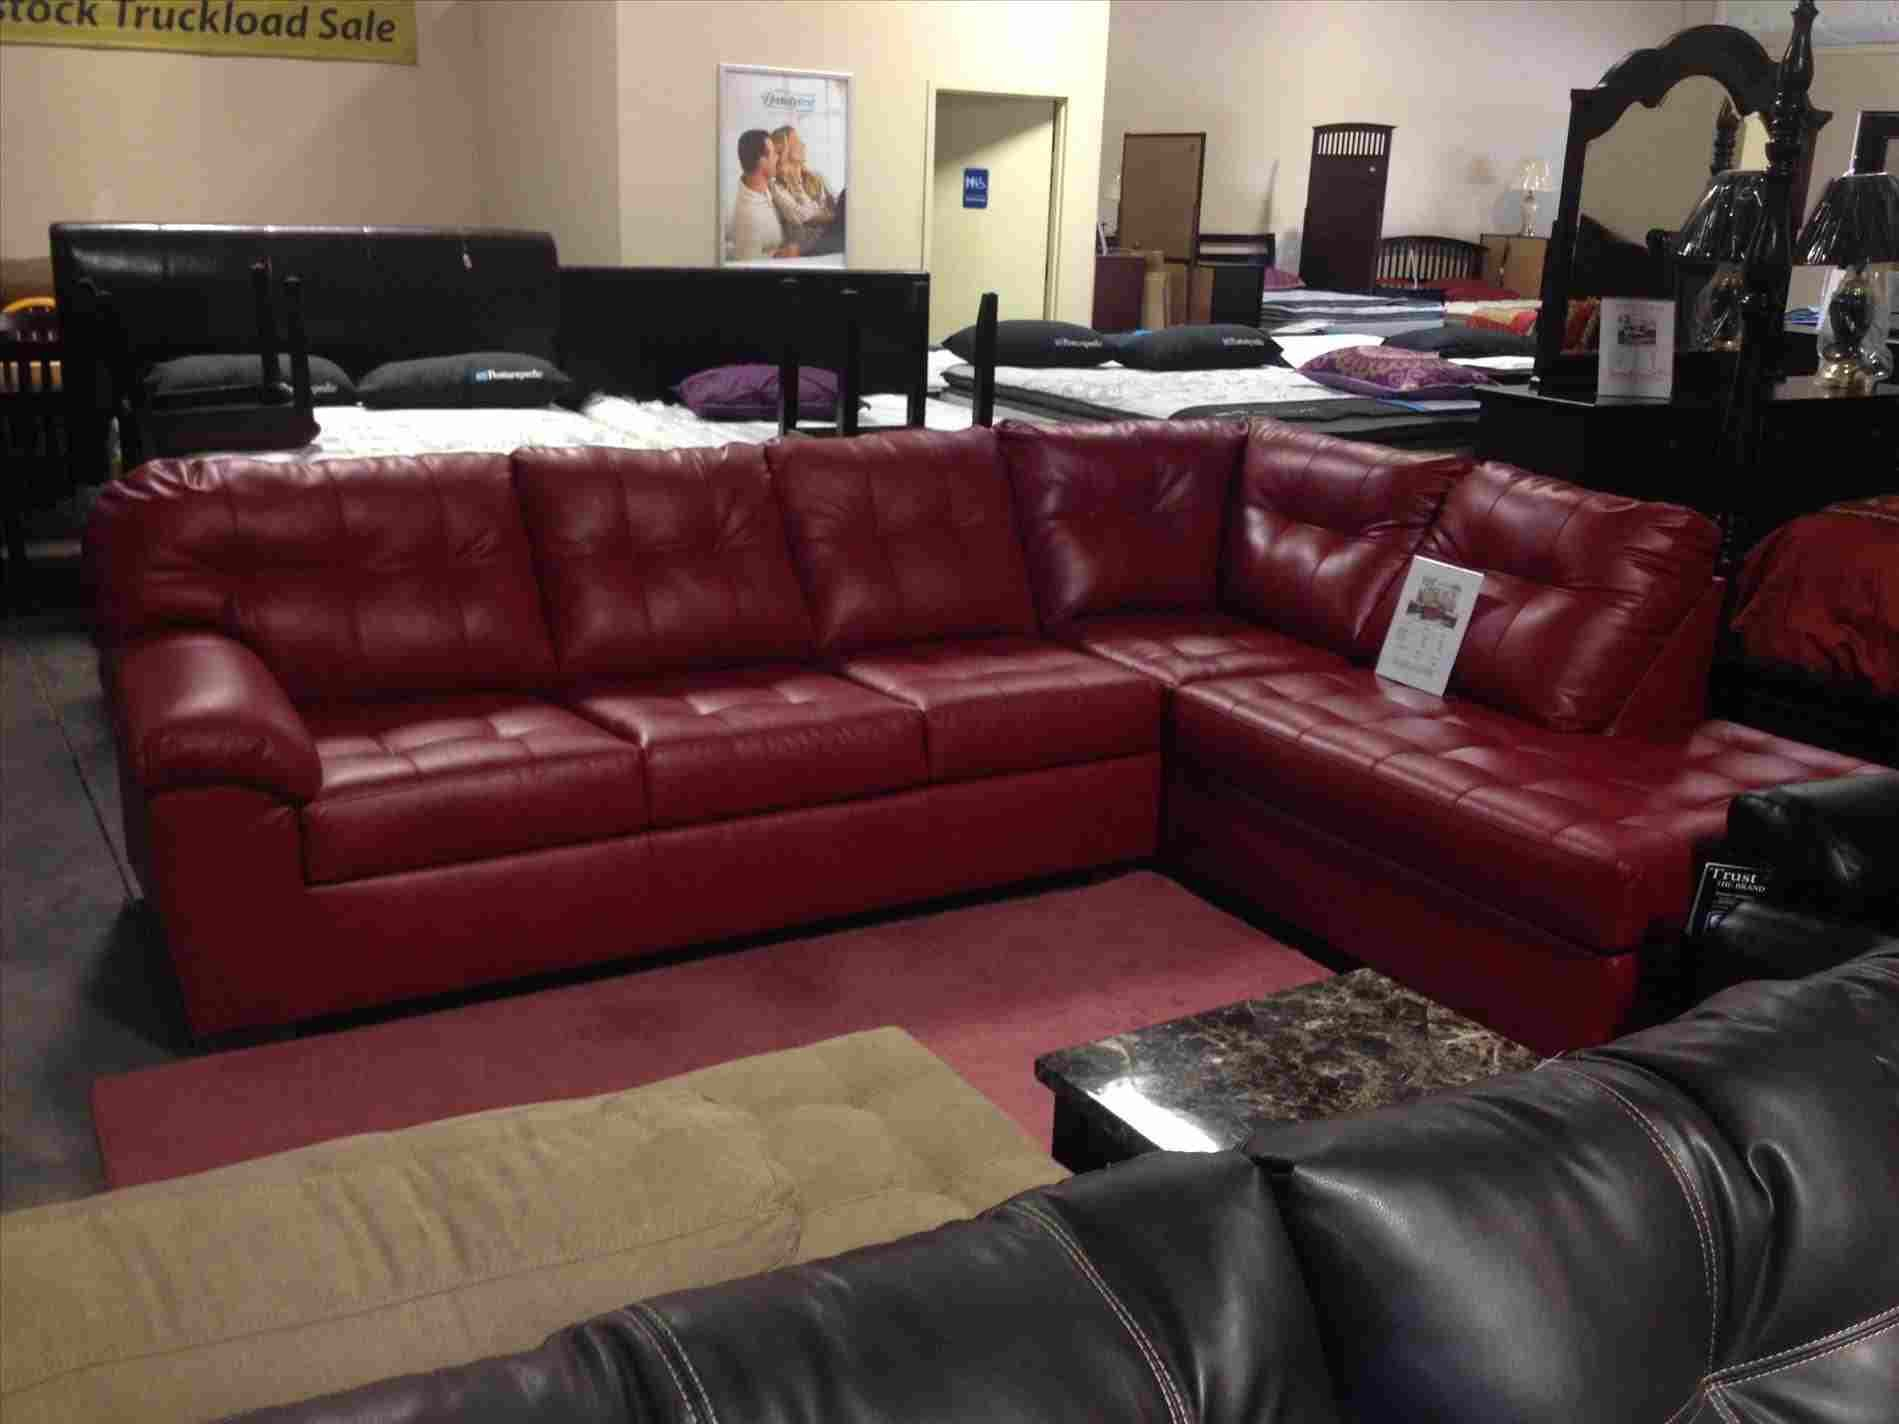 Furniture Liquidation Toronto Craigslist Sofa Bed Montreal Awesome Home